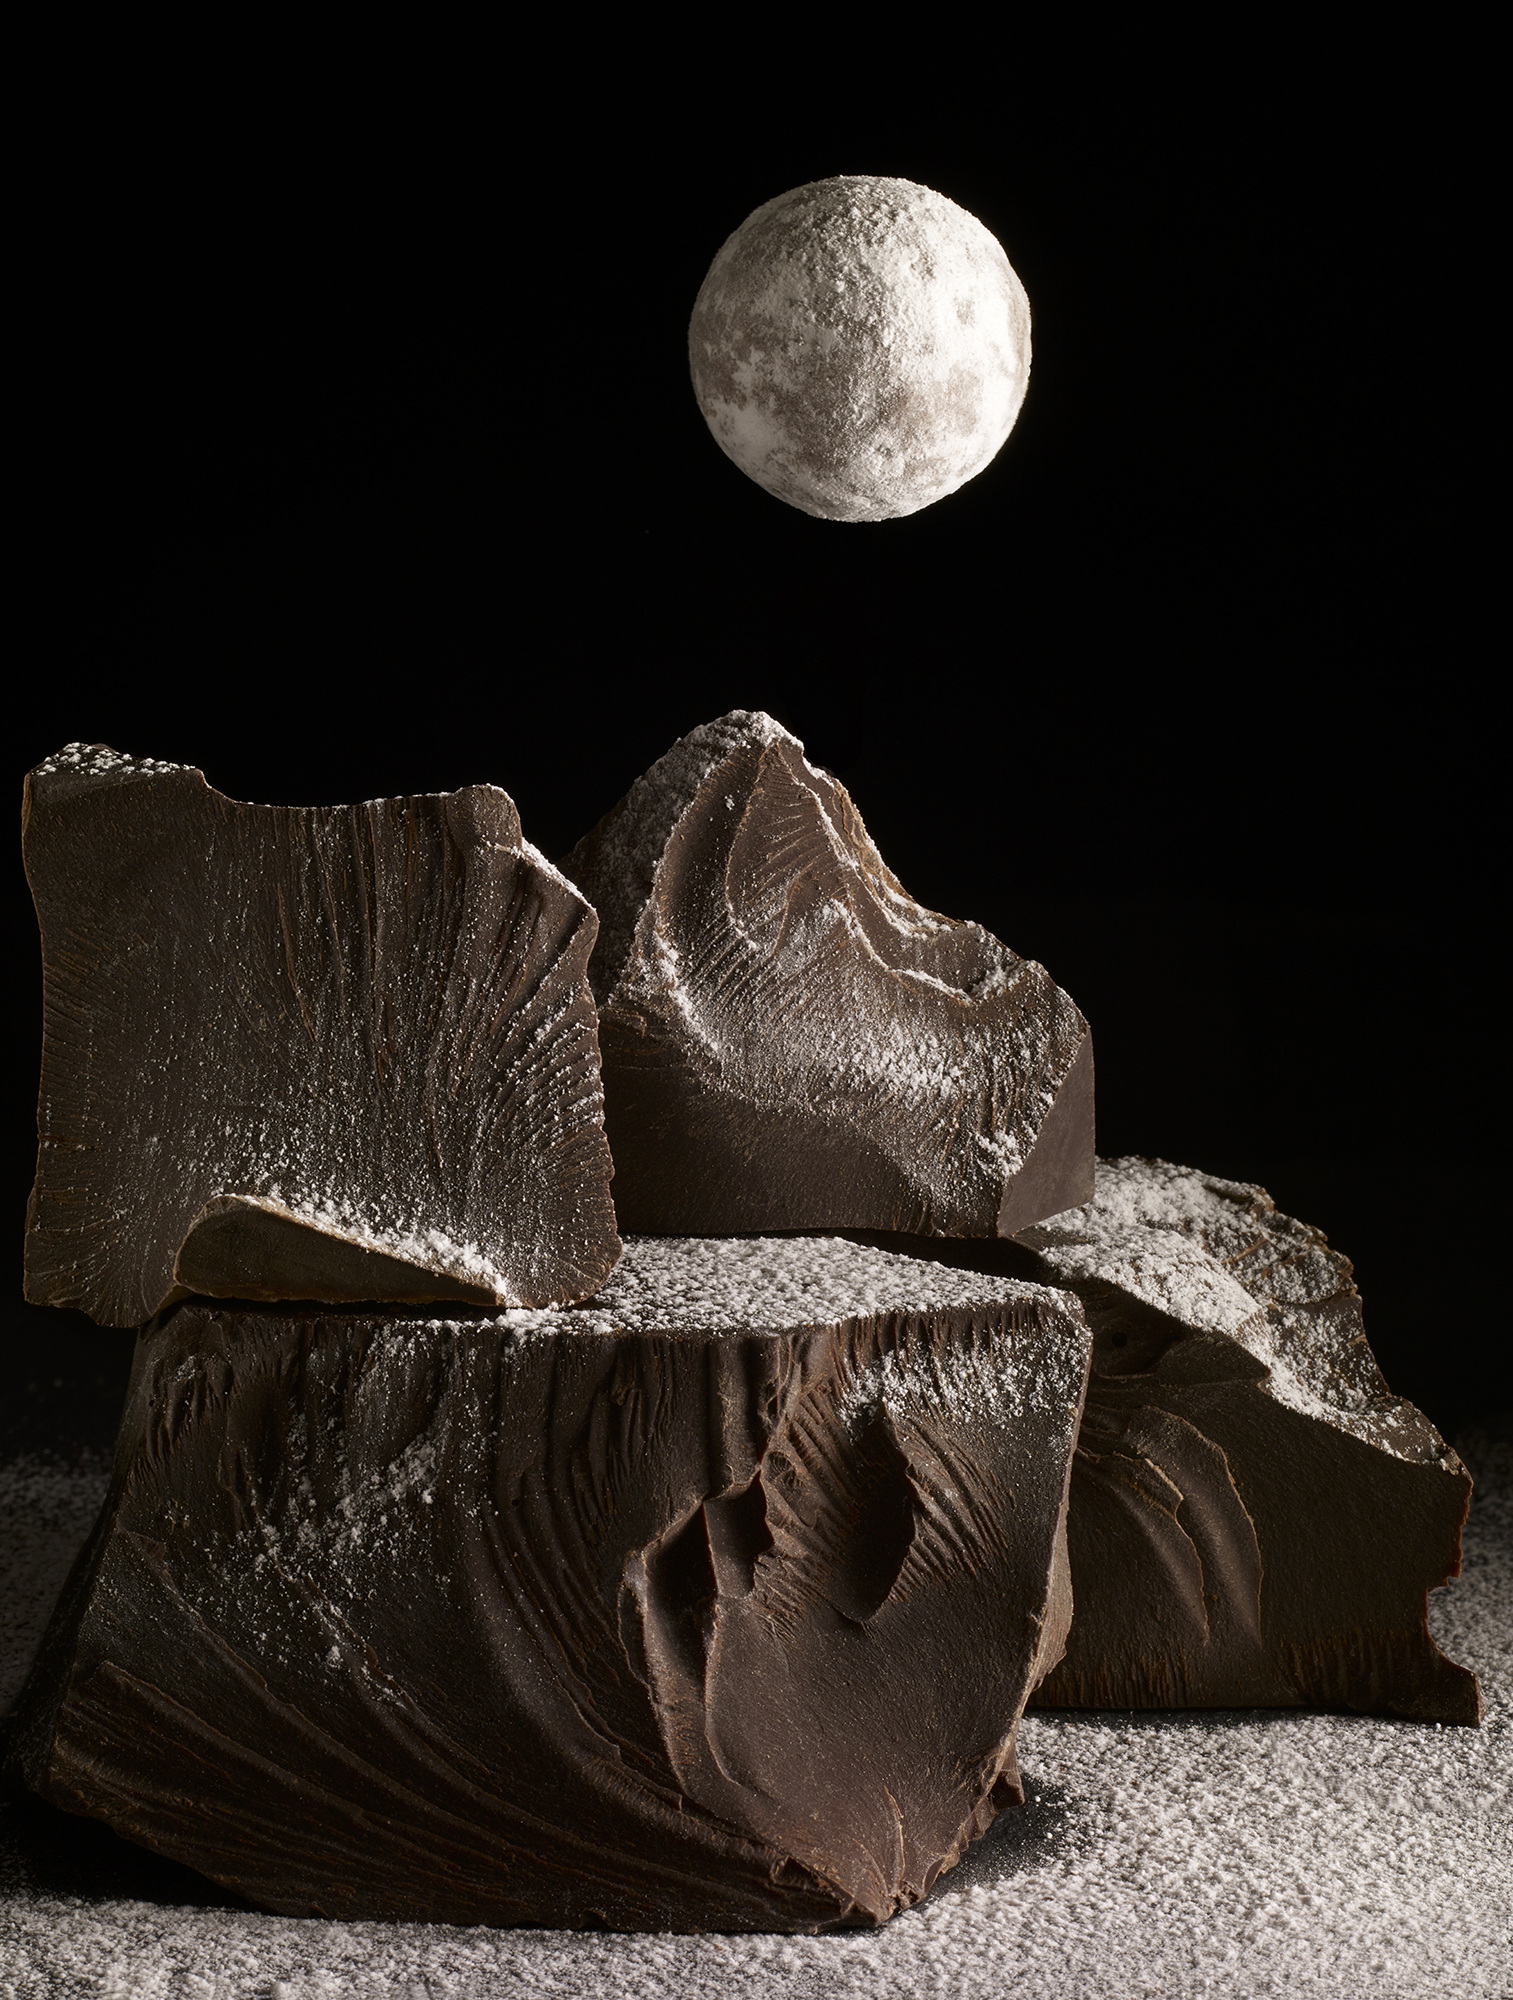 Chocolate landscape with Charbonnel & Walker chocolate truffle moon